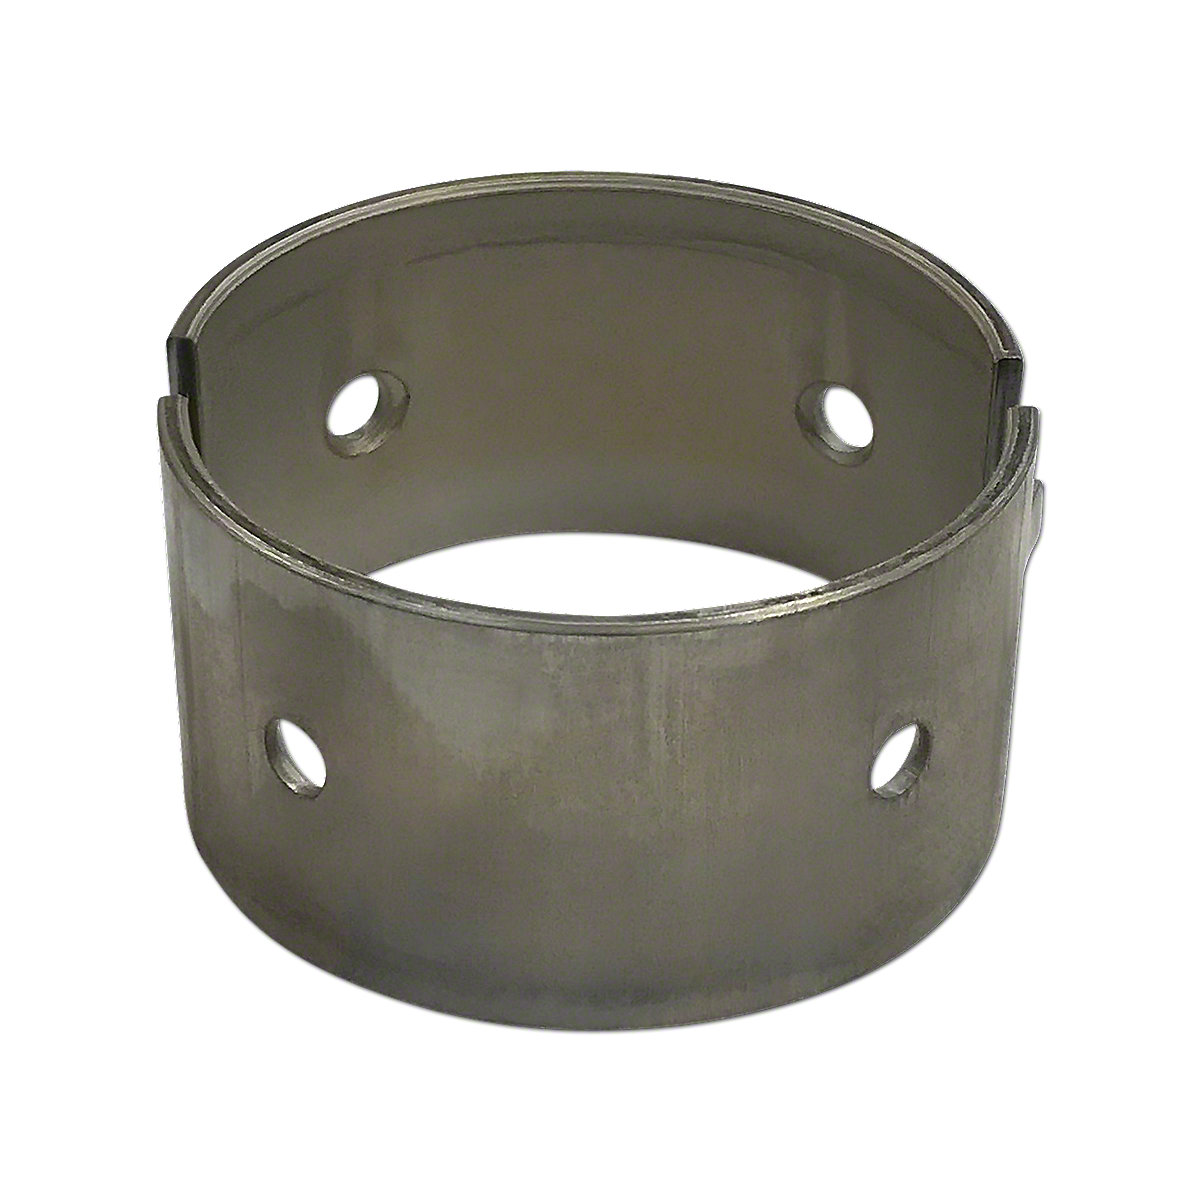 "ABC4019 0.030"" Connecting Rod Bearing"